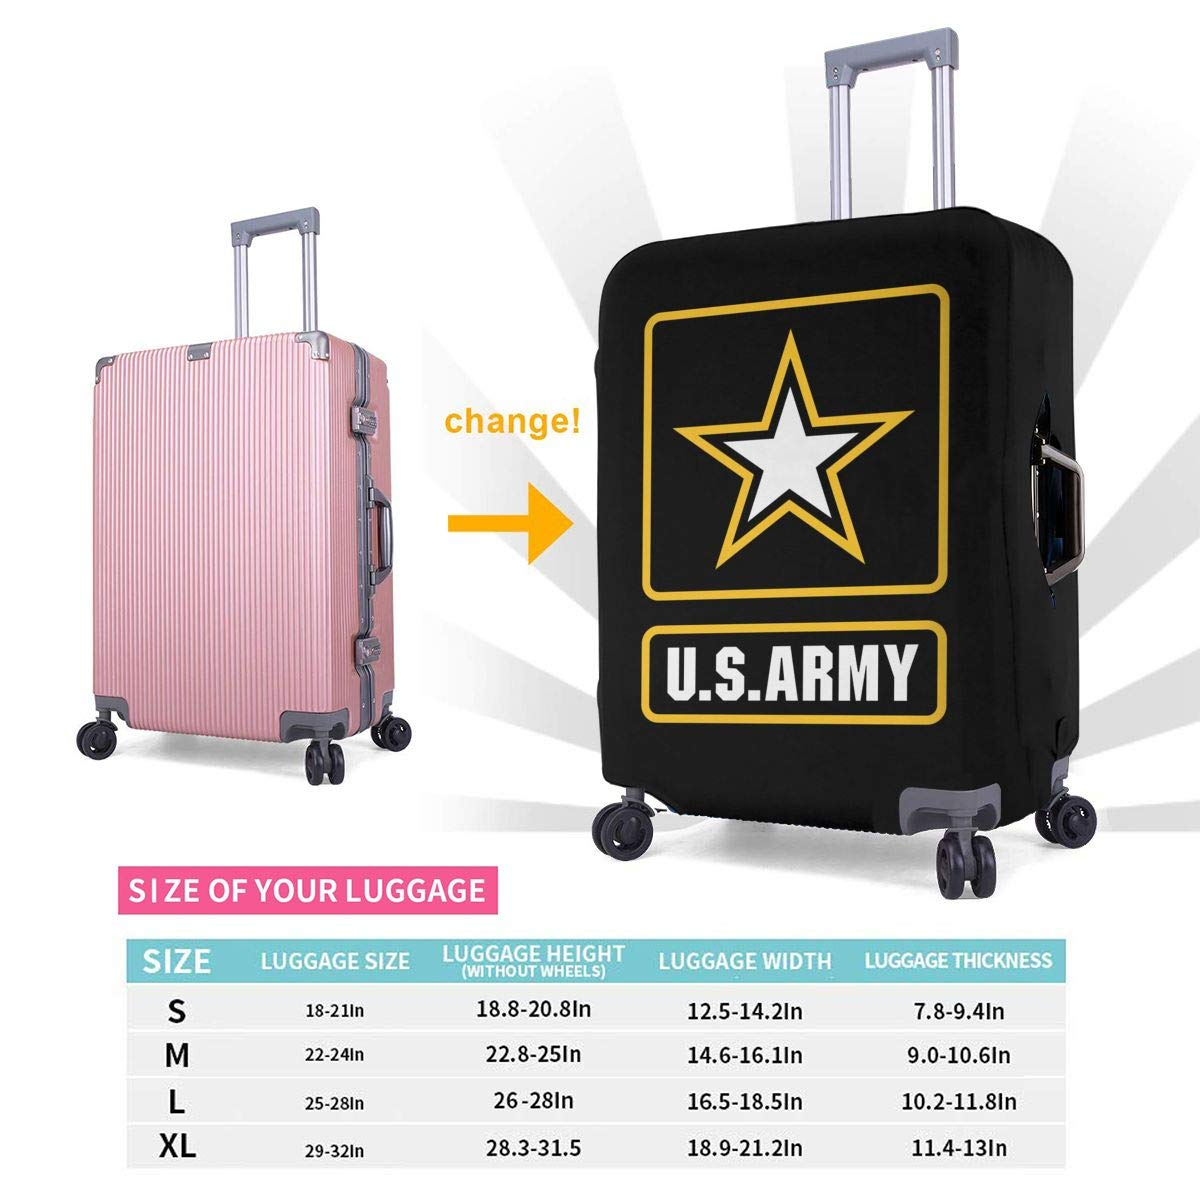 US Army Star Elastic Travel Luggage Cover,Double Print Fashion Washable Suitcase Protective Cover Fits 18-32inch Luggage